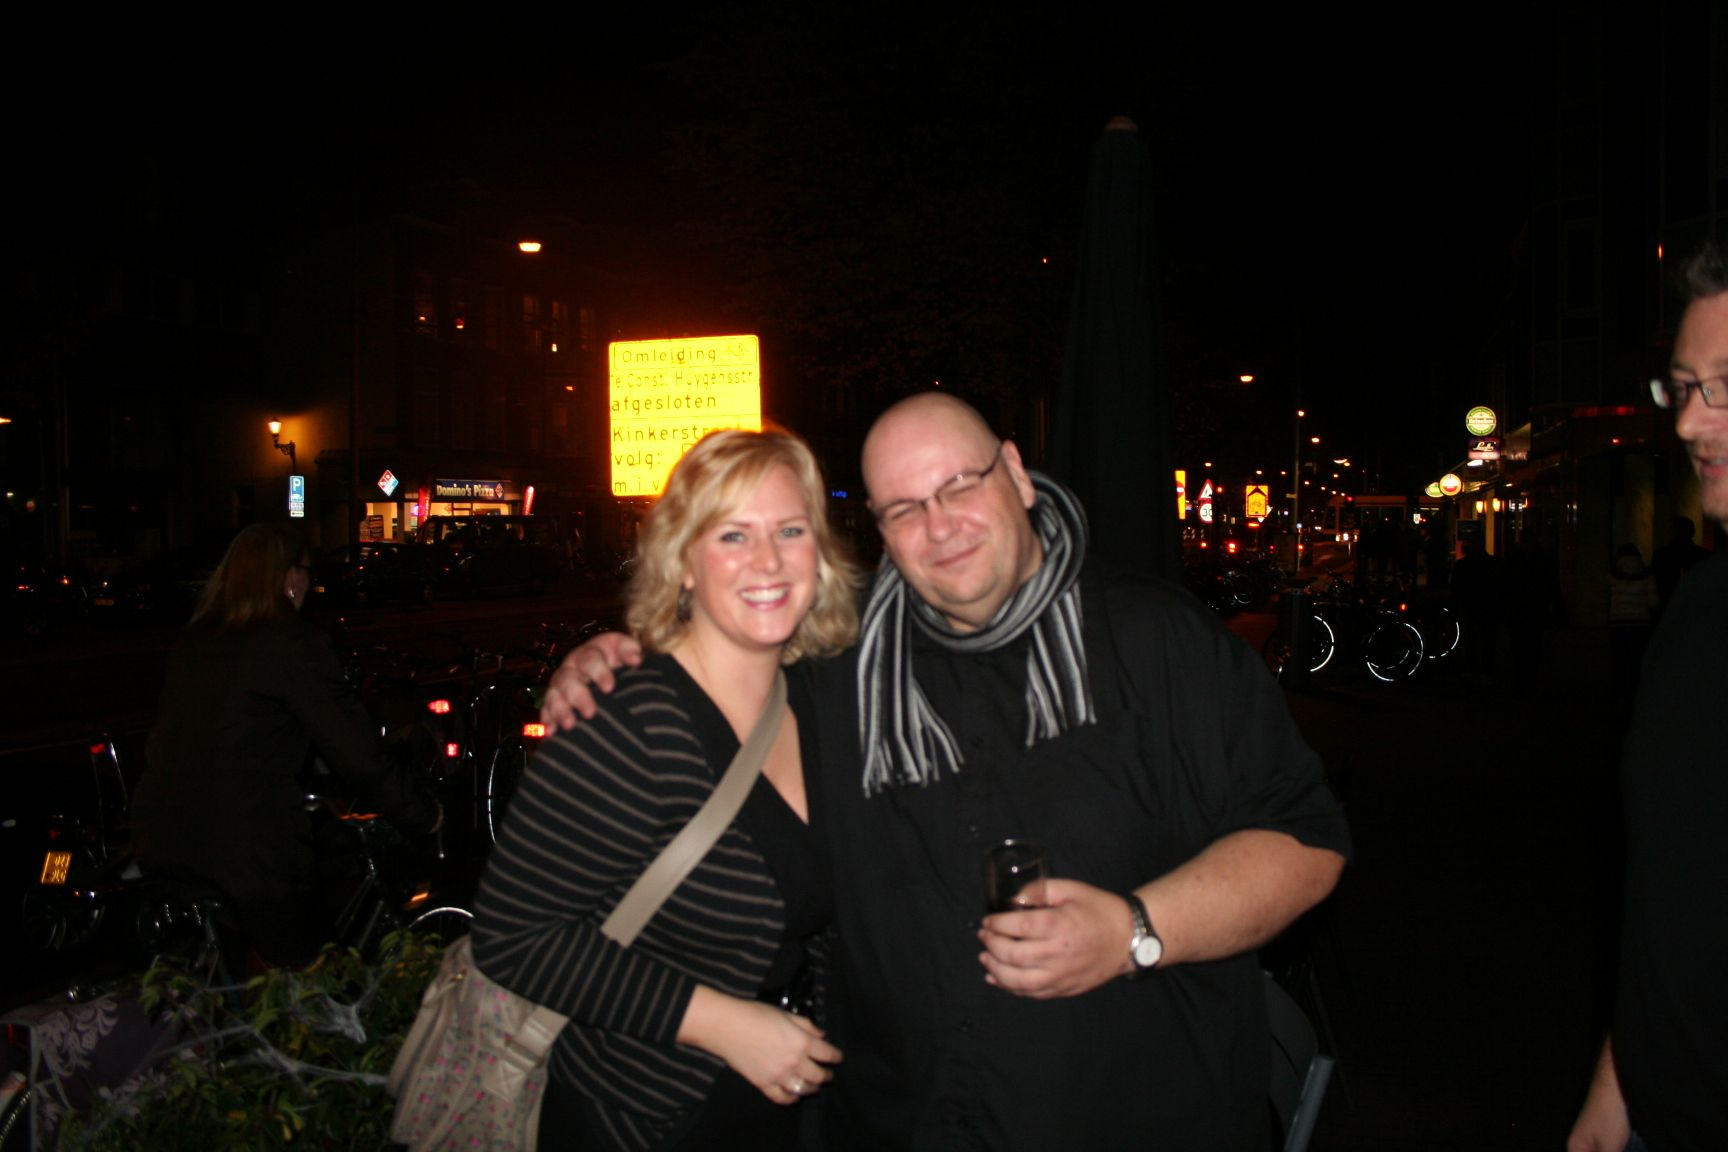 Photos - The Amsterdam Expat Meetup Group (Dutch welcome ...